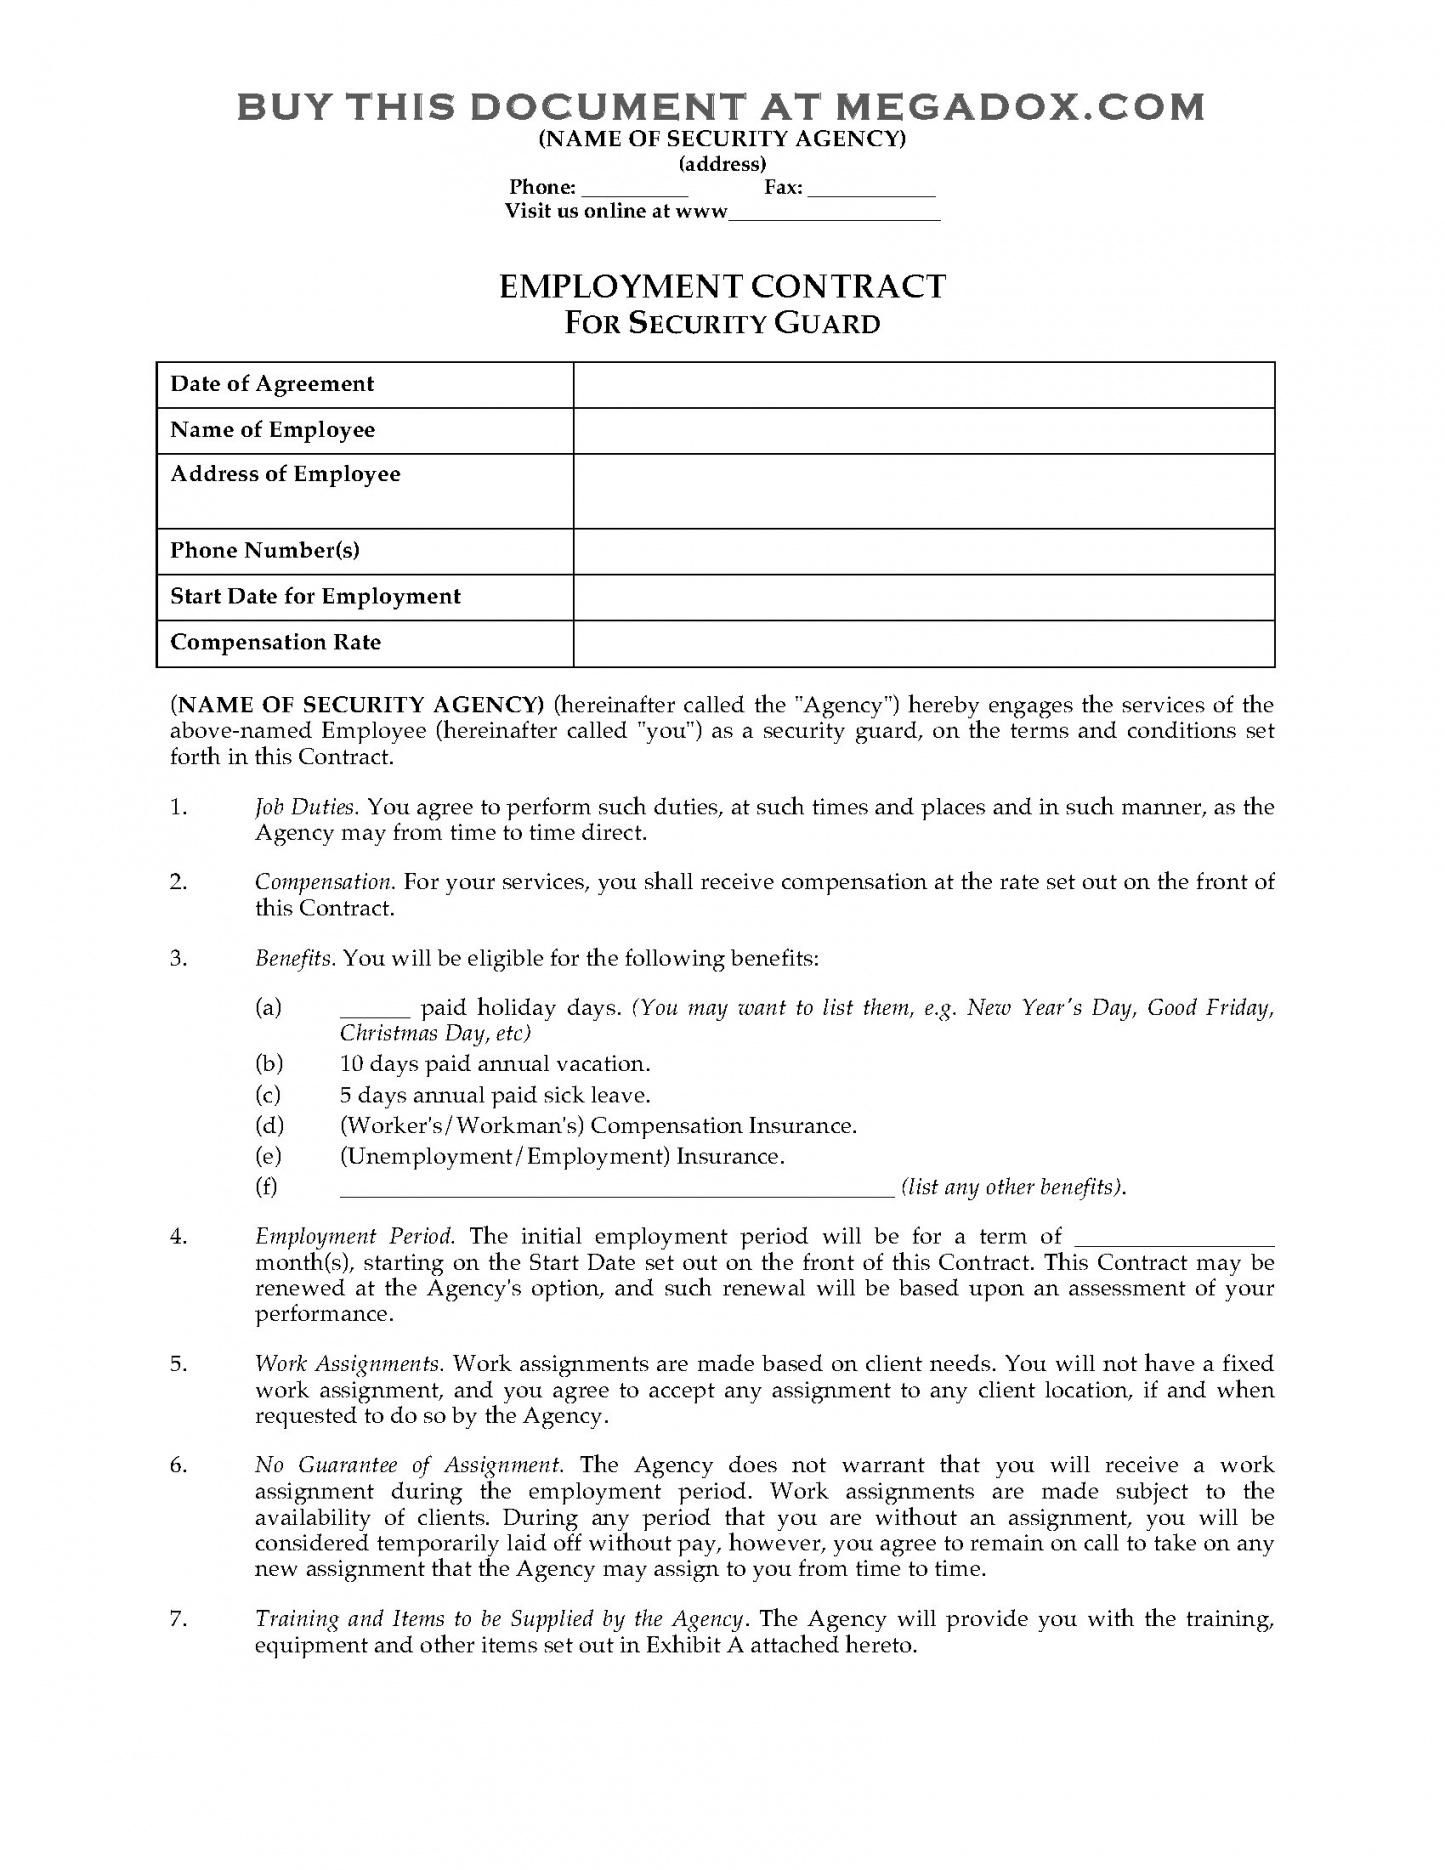 Free Security Guard Service Contract Template Excel Sample In 2021 Contract Template Security Guard Services Contract Security guard contract agreement template